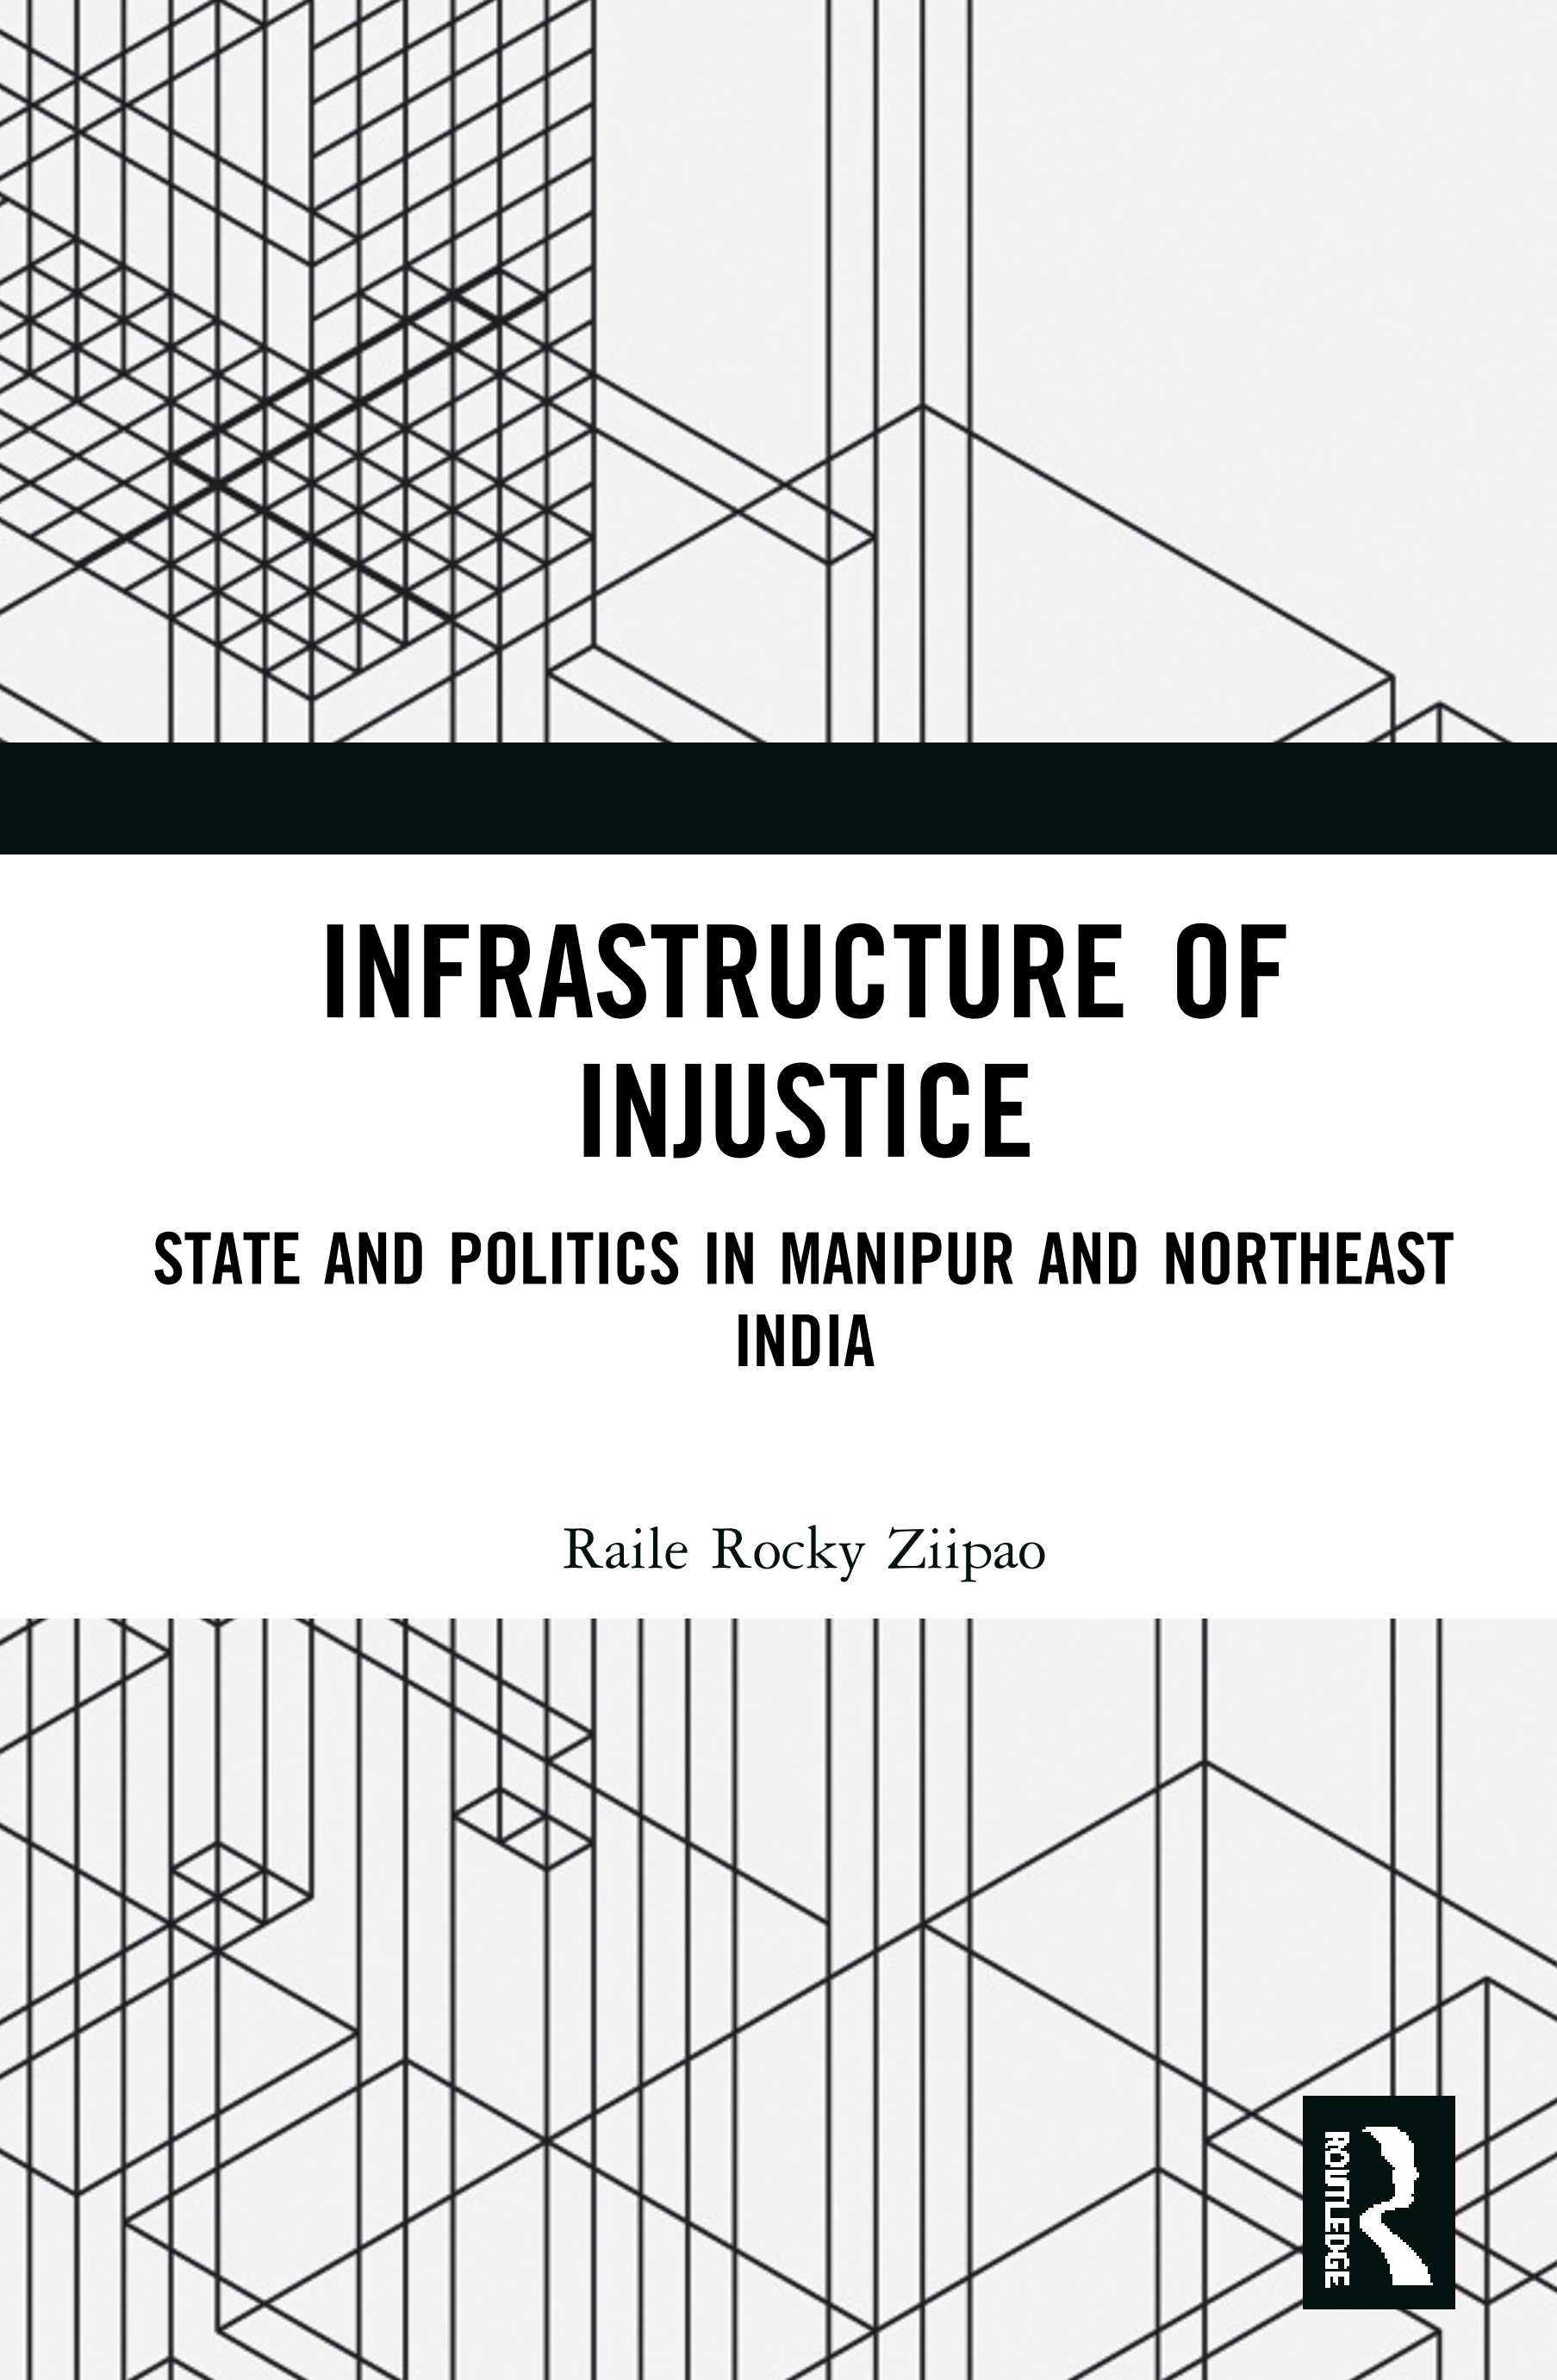 Infrastructure of Injustice: State and Politics in Manipur and Northeast India book cover